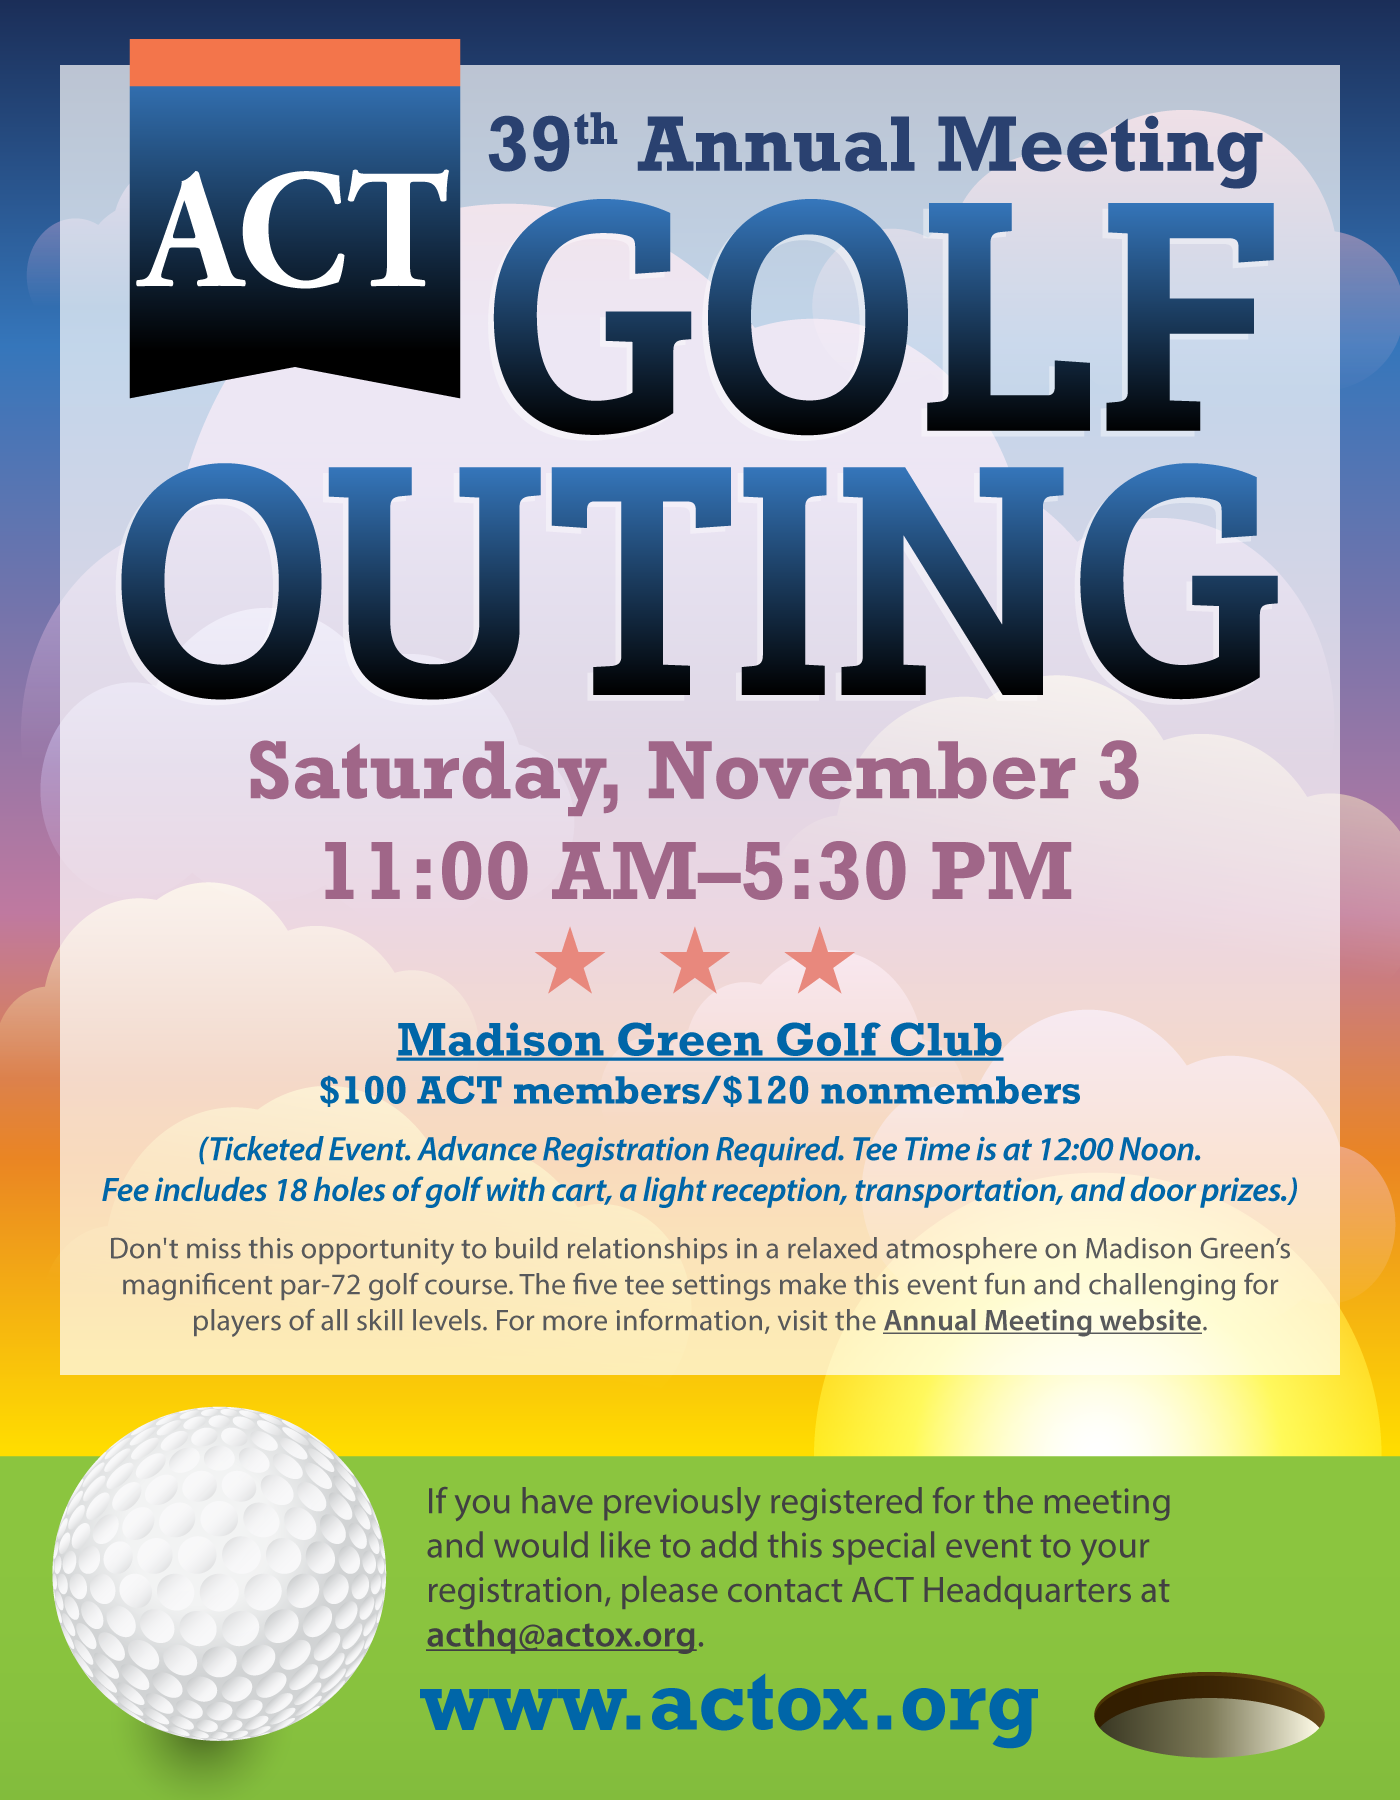 ACT 39th Annual Meeting - Golf Outing - Saturday, November 3, 2018 -